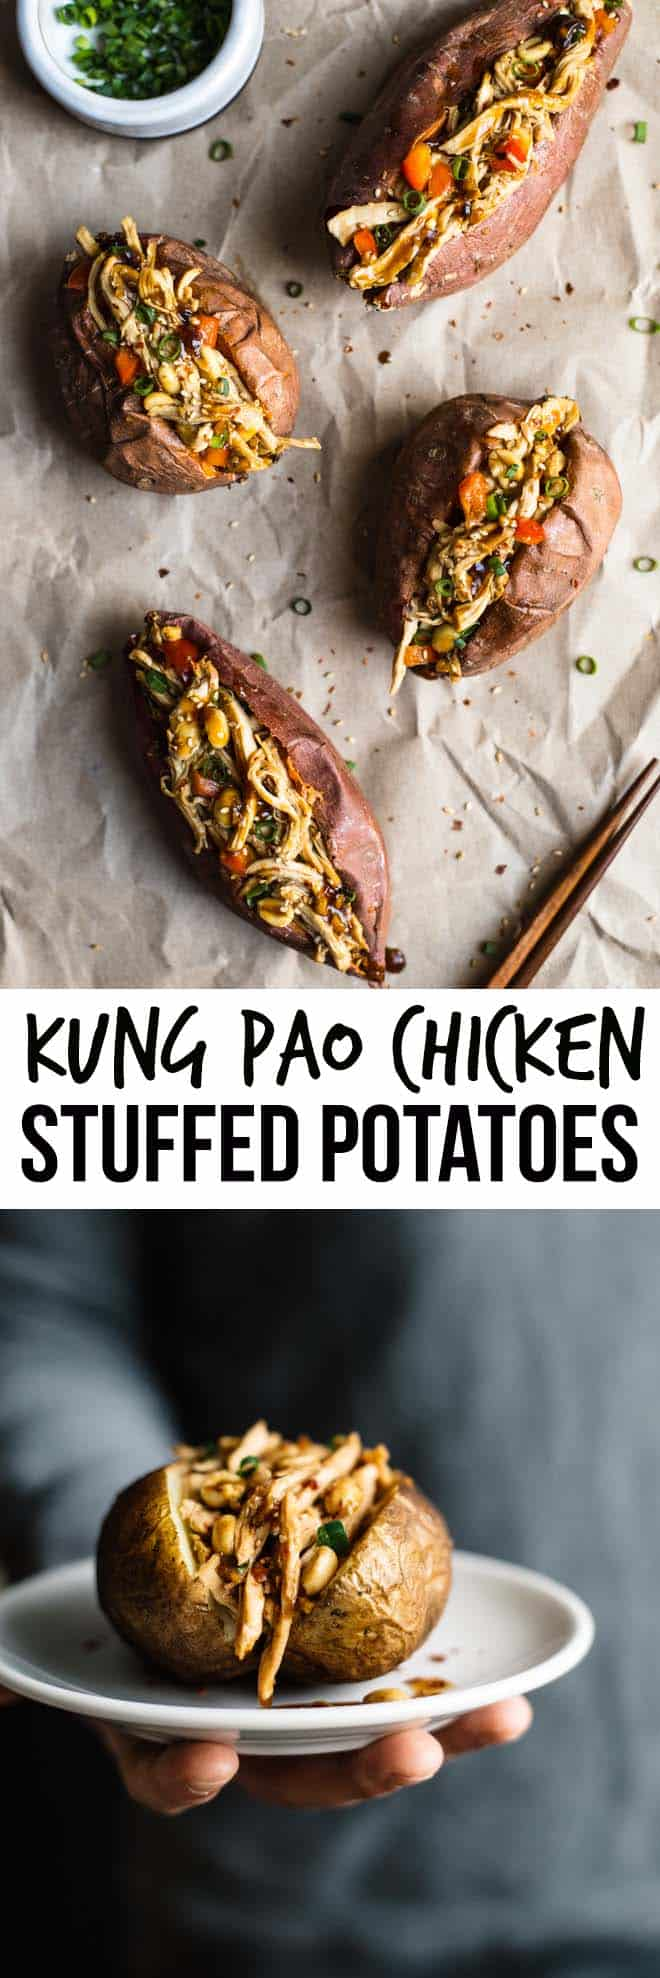 Kung Pao Chicken Stuffed Potatoes, Two Ways - a delicious, gluten-free dish that is ready in 45 minutes! by Lisa Lin of healthynibblesandbits.com